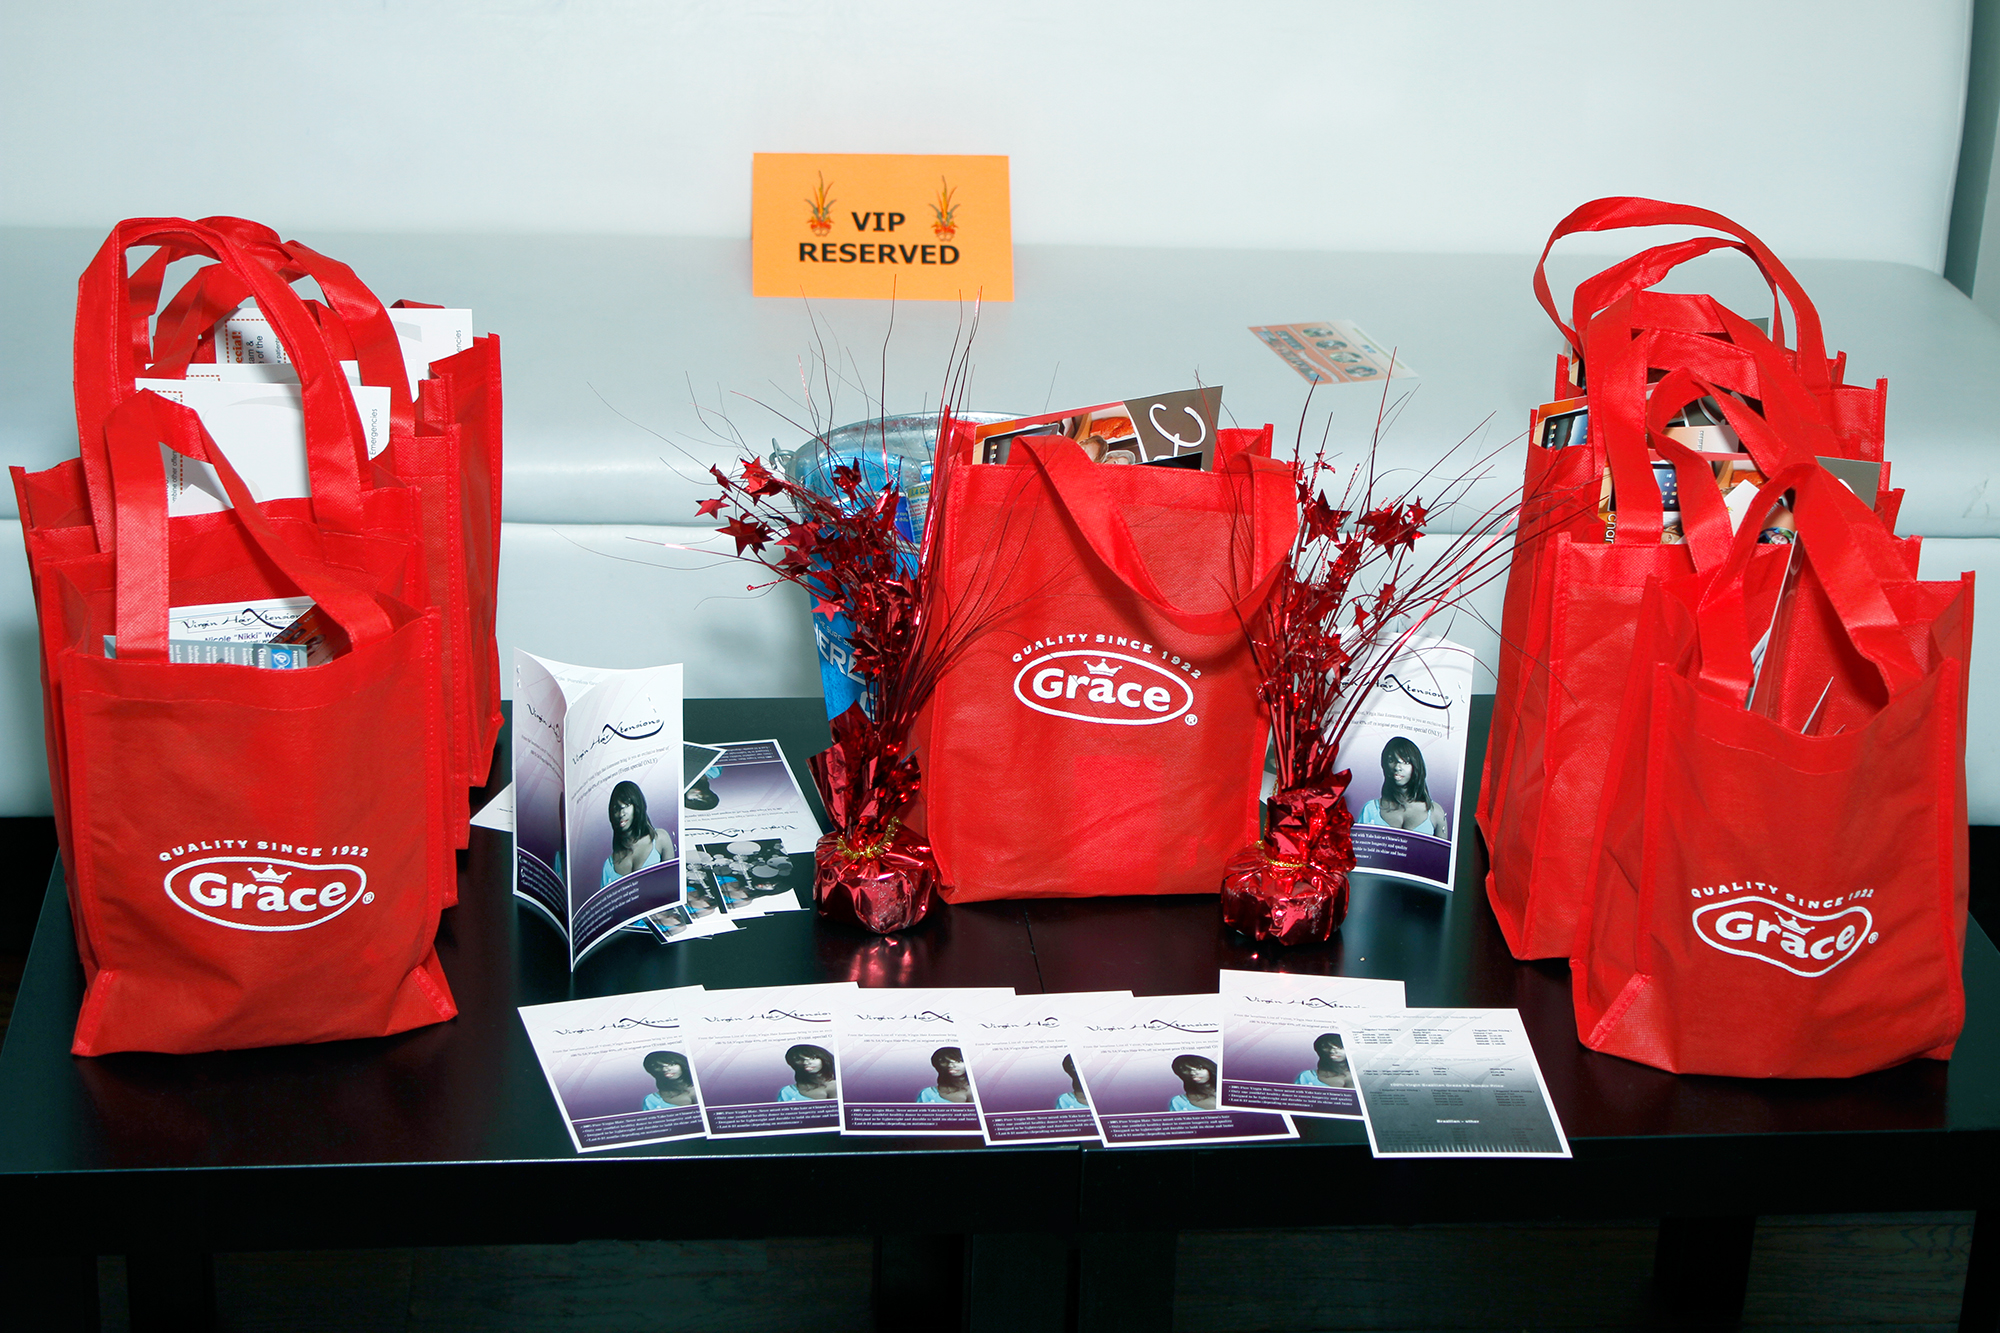 Attendees enjoyed swag bags filled with goodies